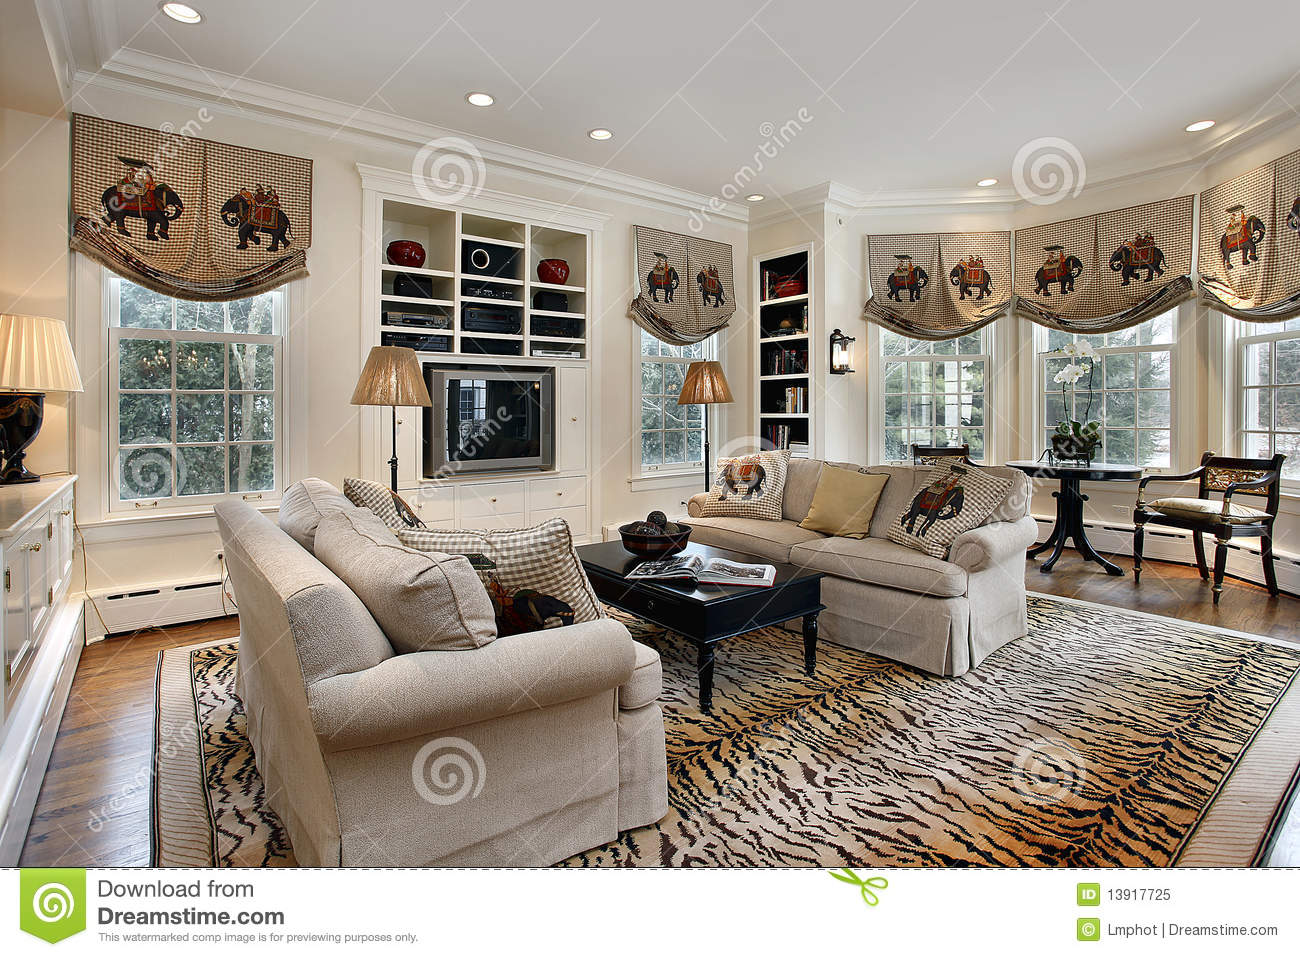 sofa table design plans chesterfield wigan sofascore family room with built in cabinets royalty free stock ...